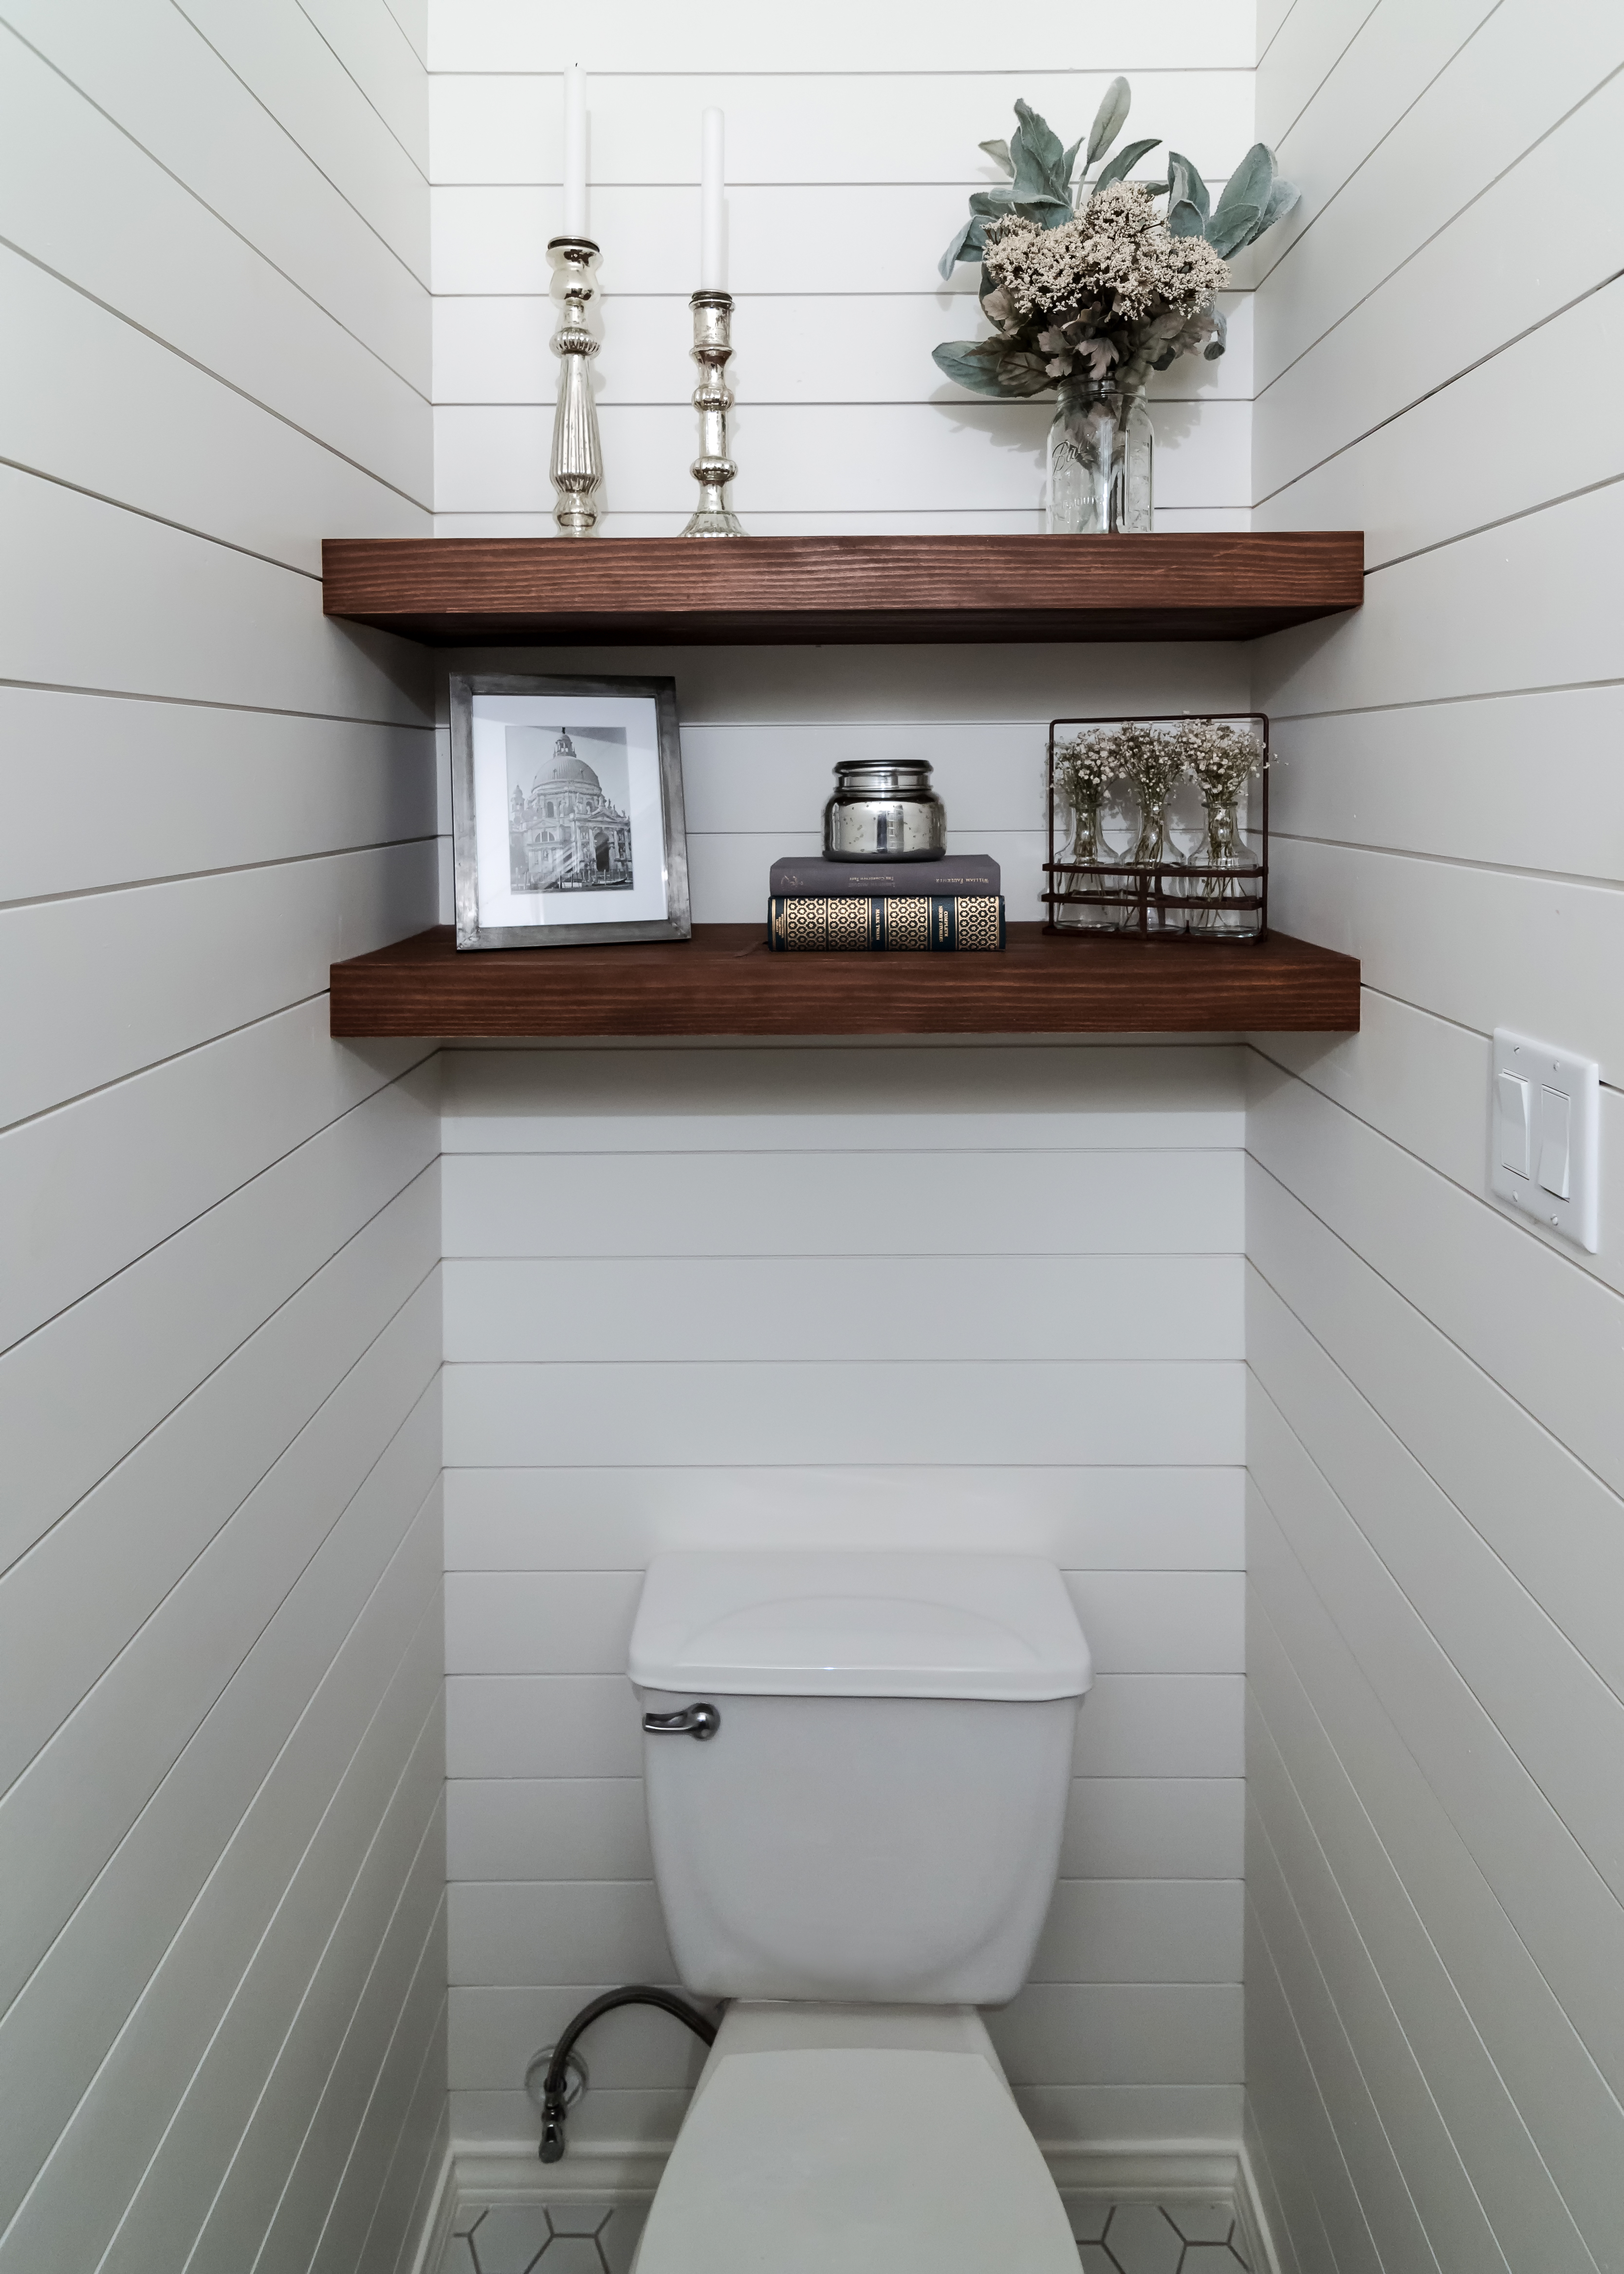 Cerulean Concepts Powder Room Shiplap and Shelving